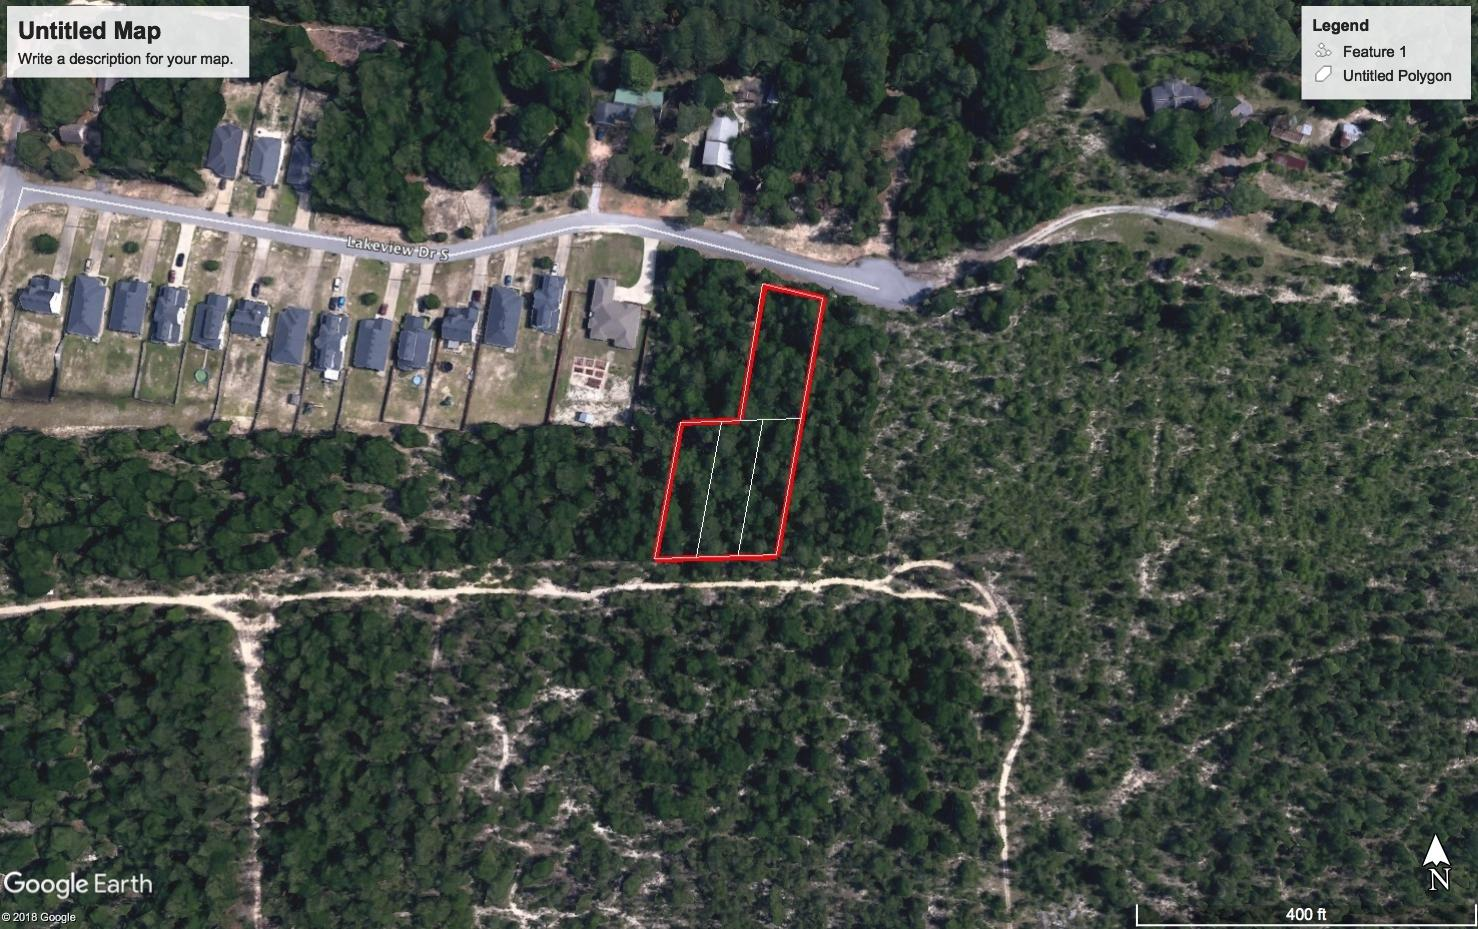 4 Lots S Lakeview Drive, Crestview, FL 32536 | Cosmo Spellings